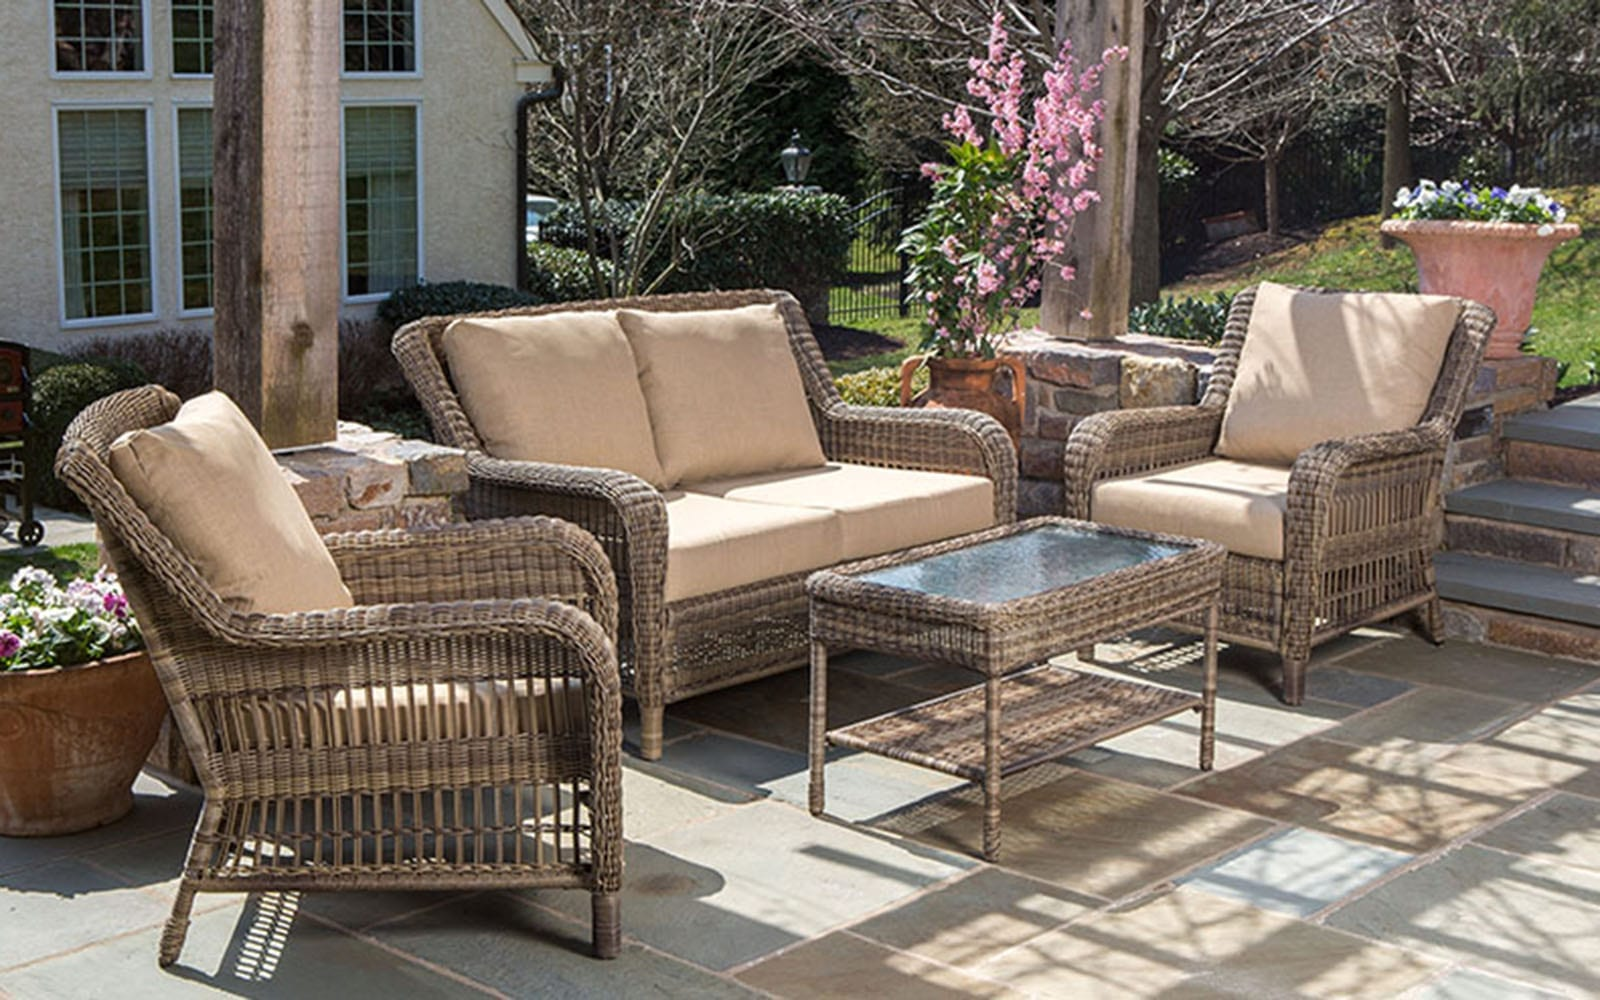 white chairs sets outdoor furniture for small spaces | Hicks Nurseries | Long Island's Largest Garden Center ...